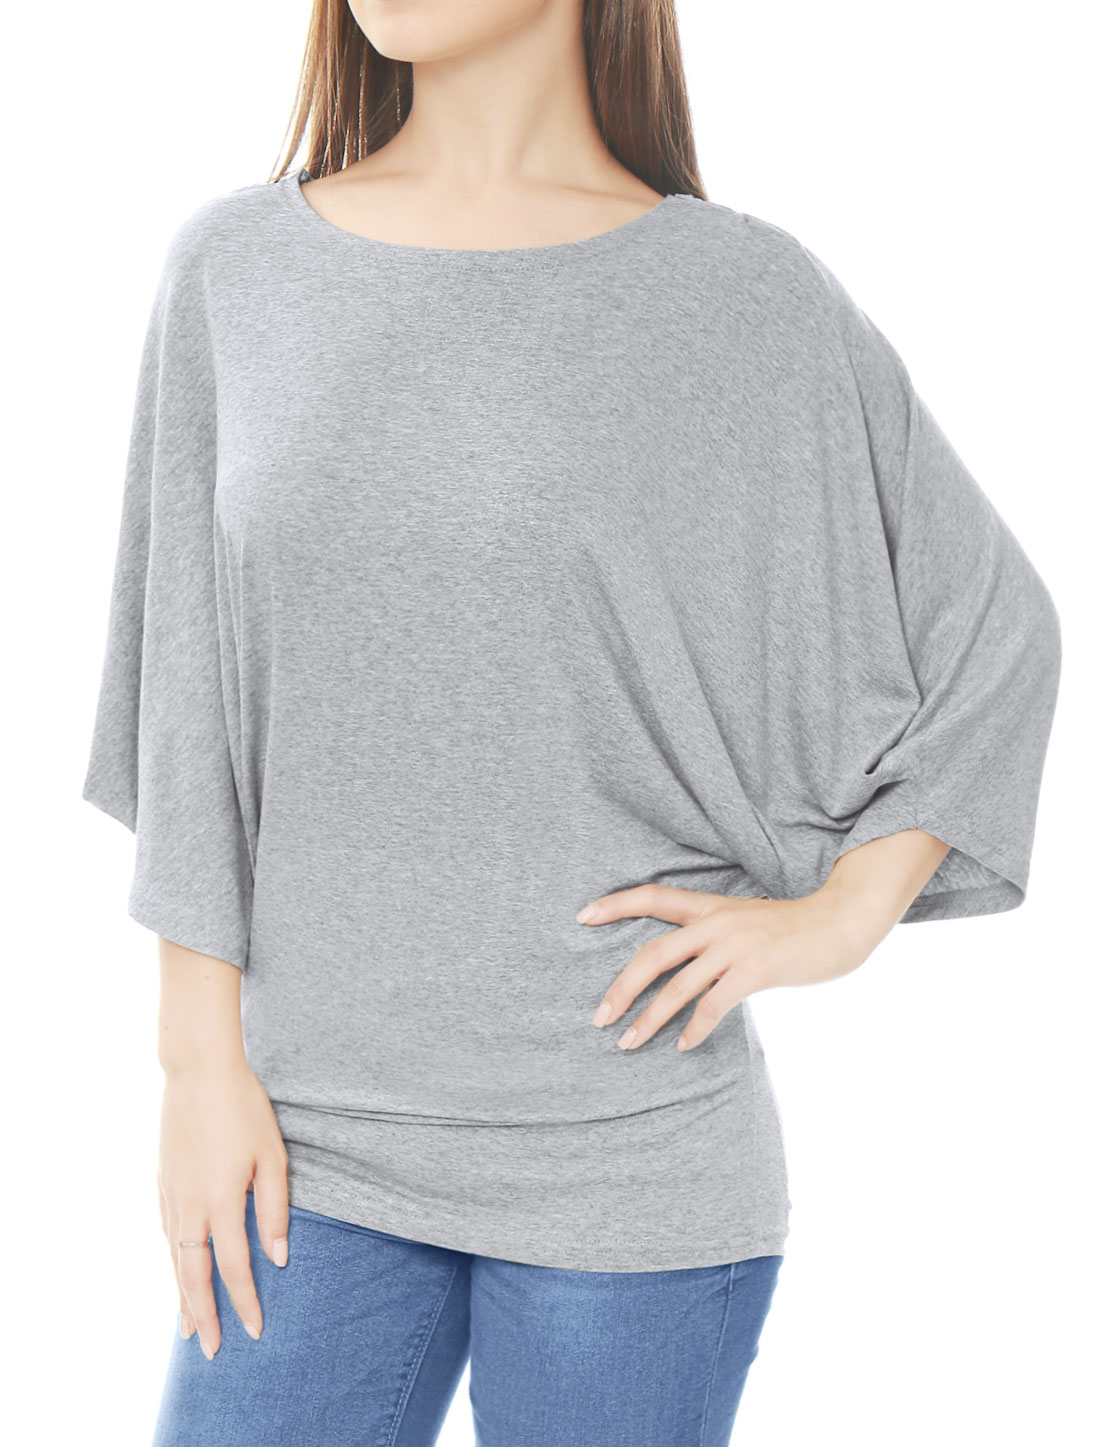 Women Boat Neck Batwing Sleeves Oversized Tunic Top Gray M